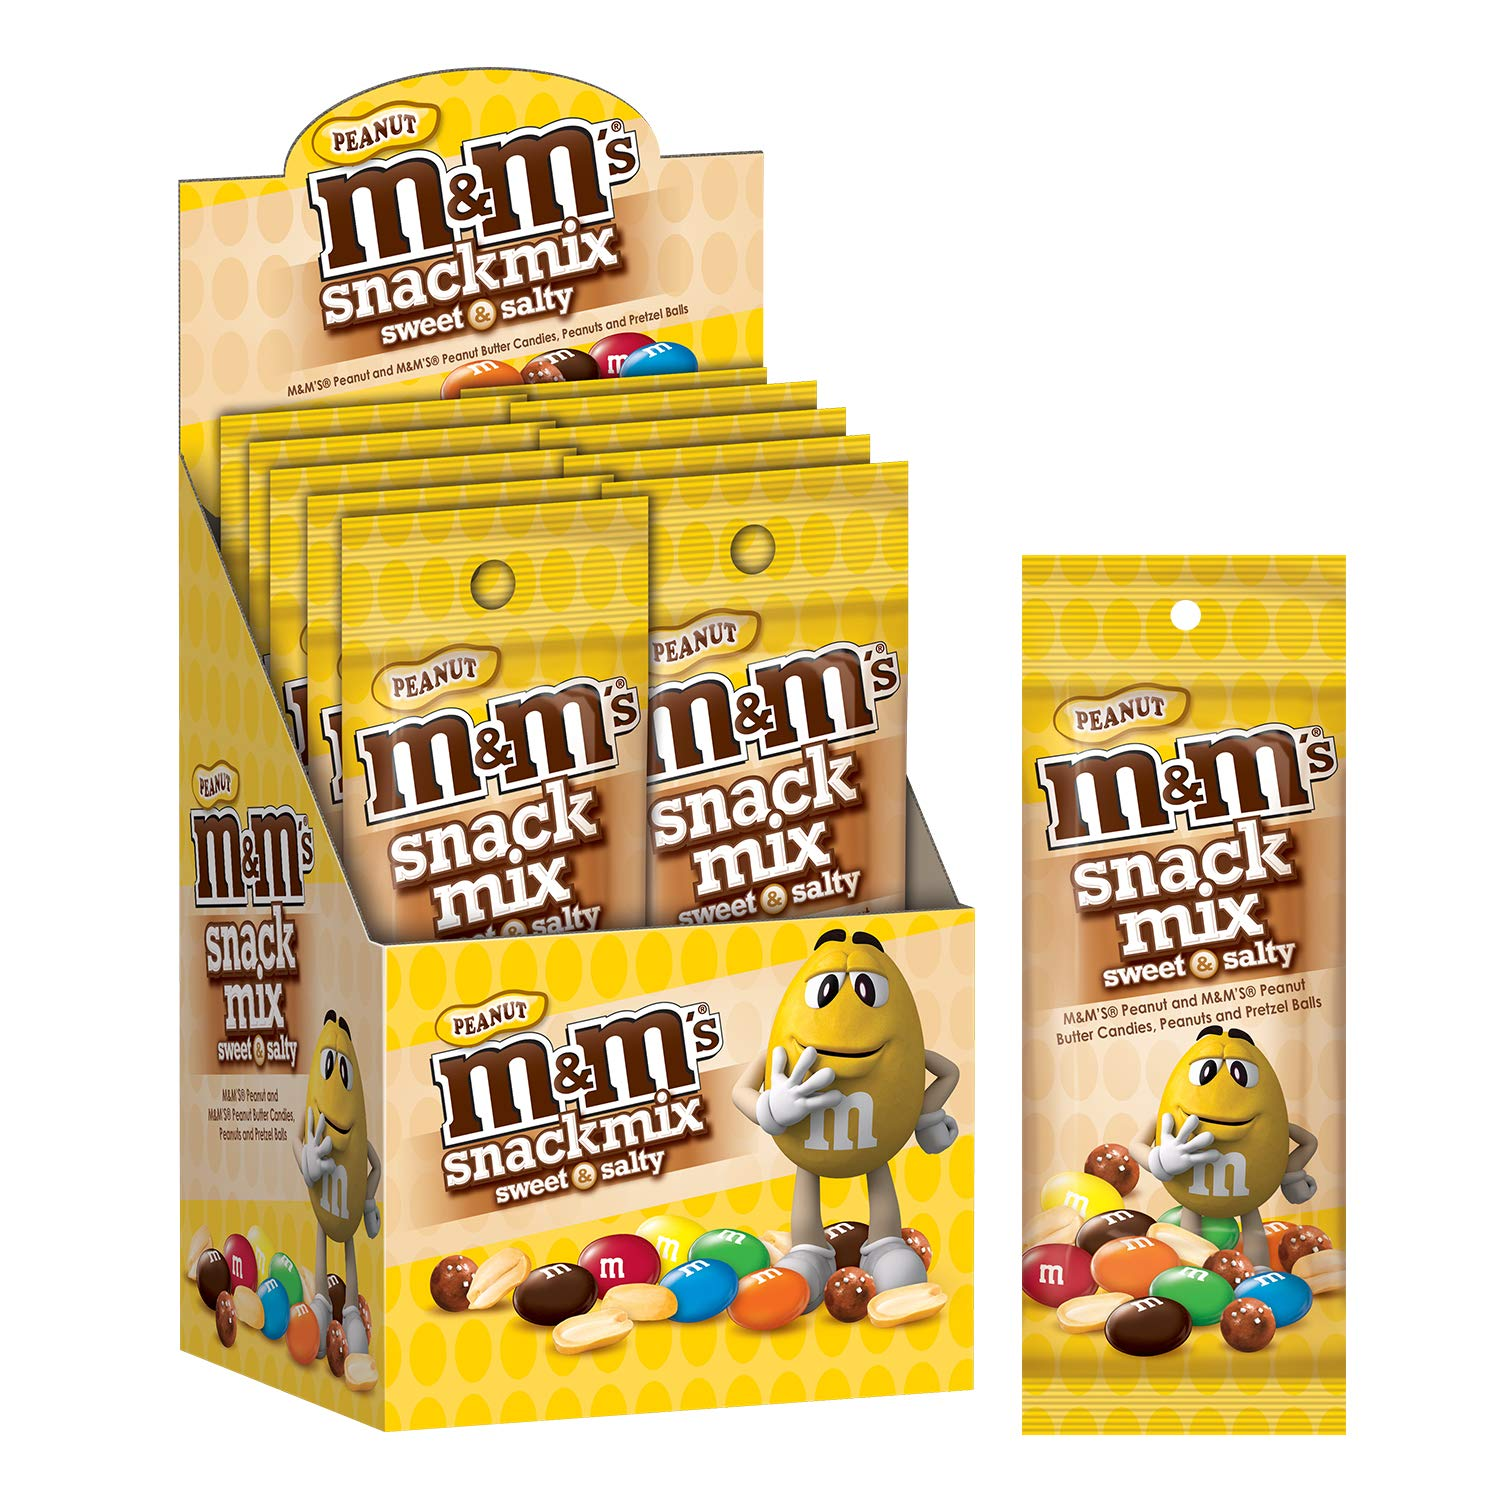 M&M'S Peanut Chocolate Candy Snack Mix 1.75-Ounce Slim Pack (Pack of 10) by M&M'S